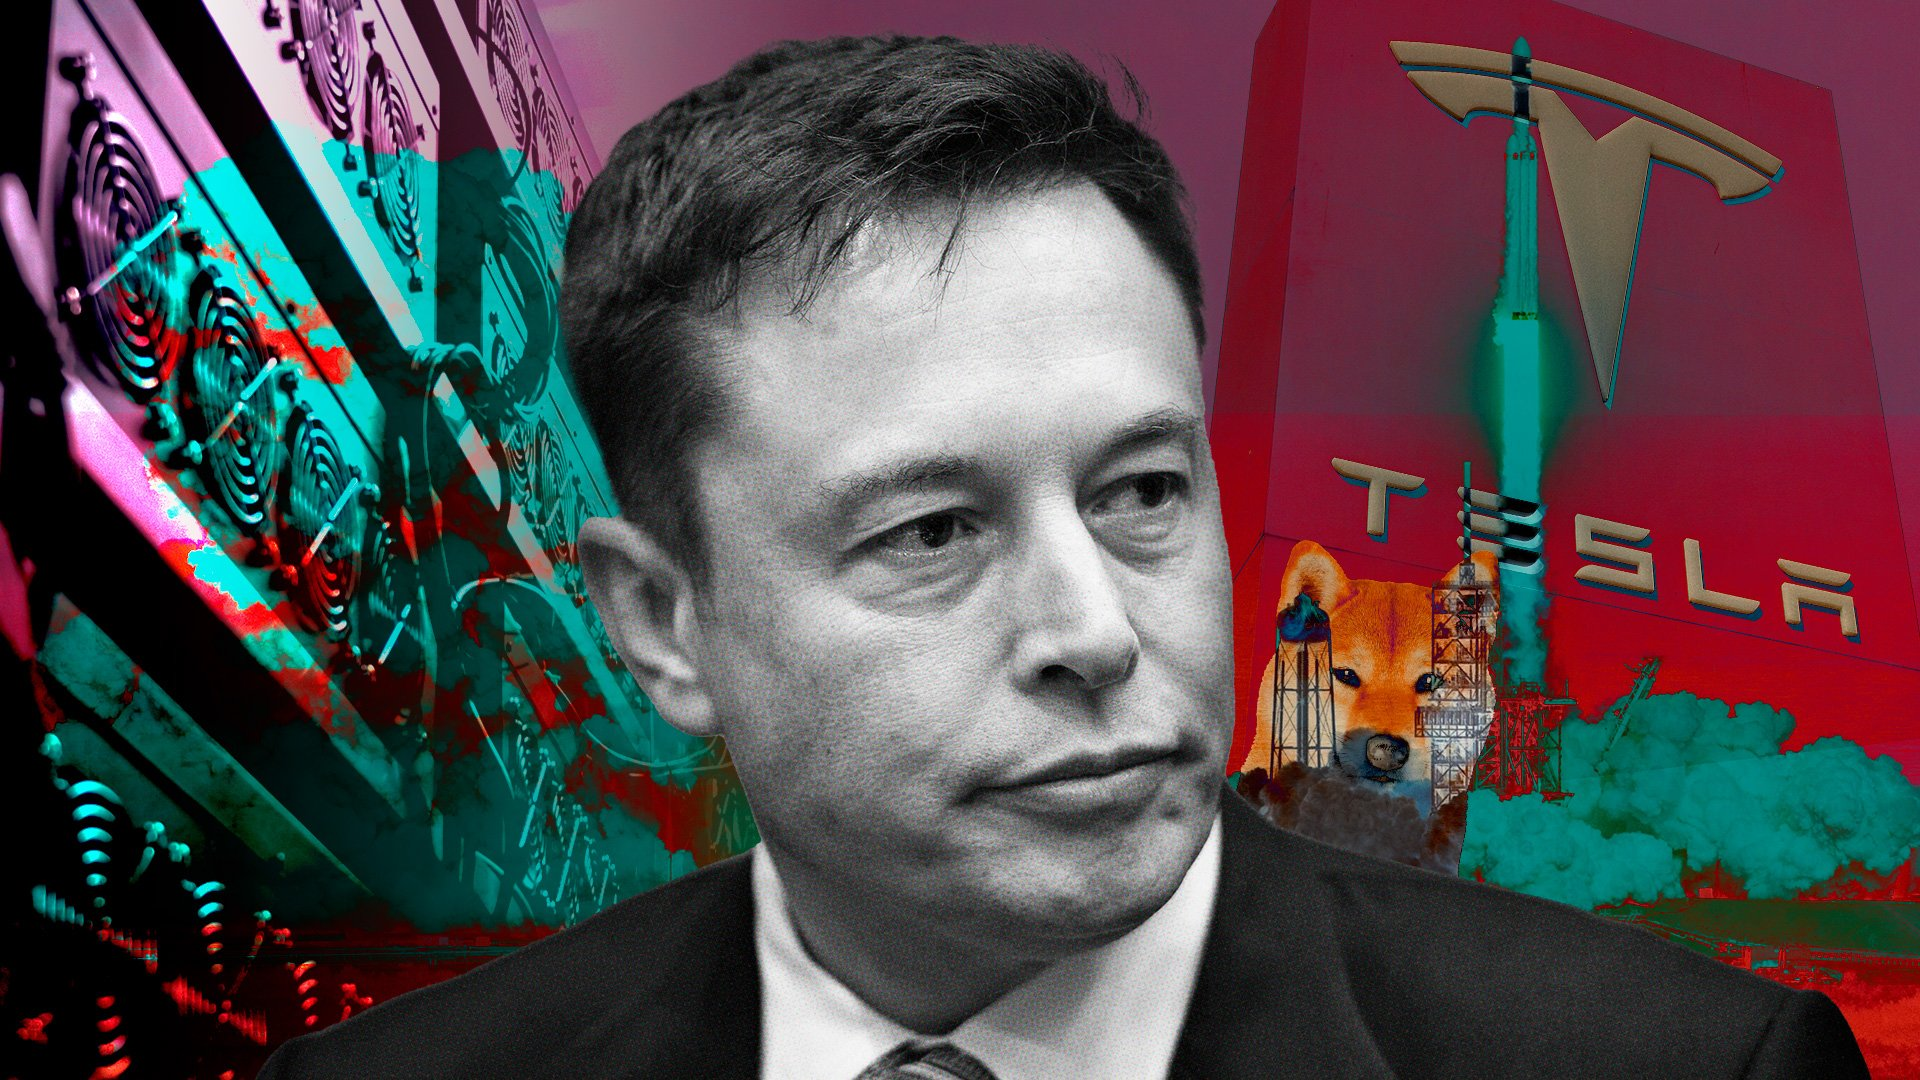 Event confirms Elon Musk will discuss bitcoin with Jack Dorsey in July